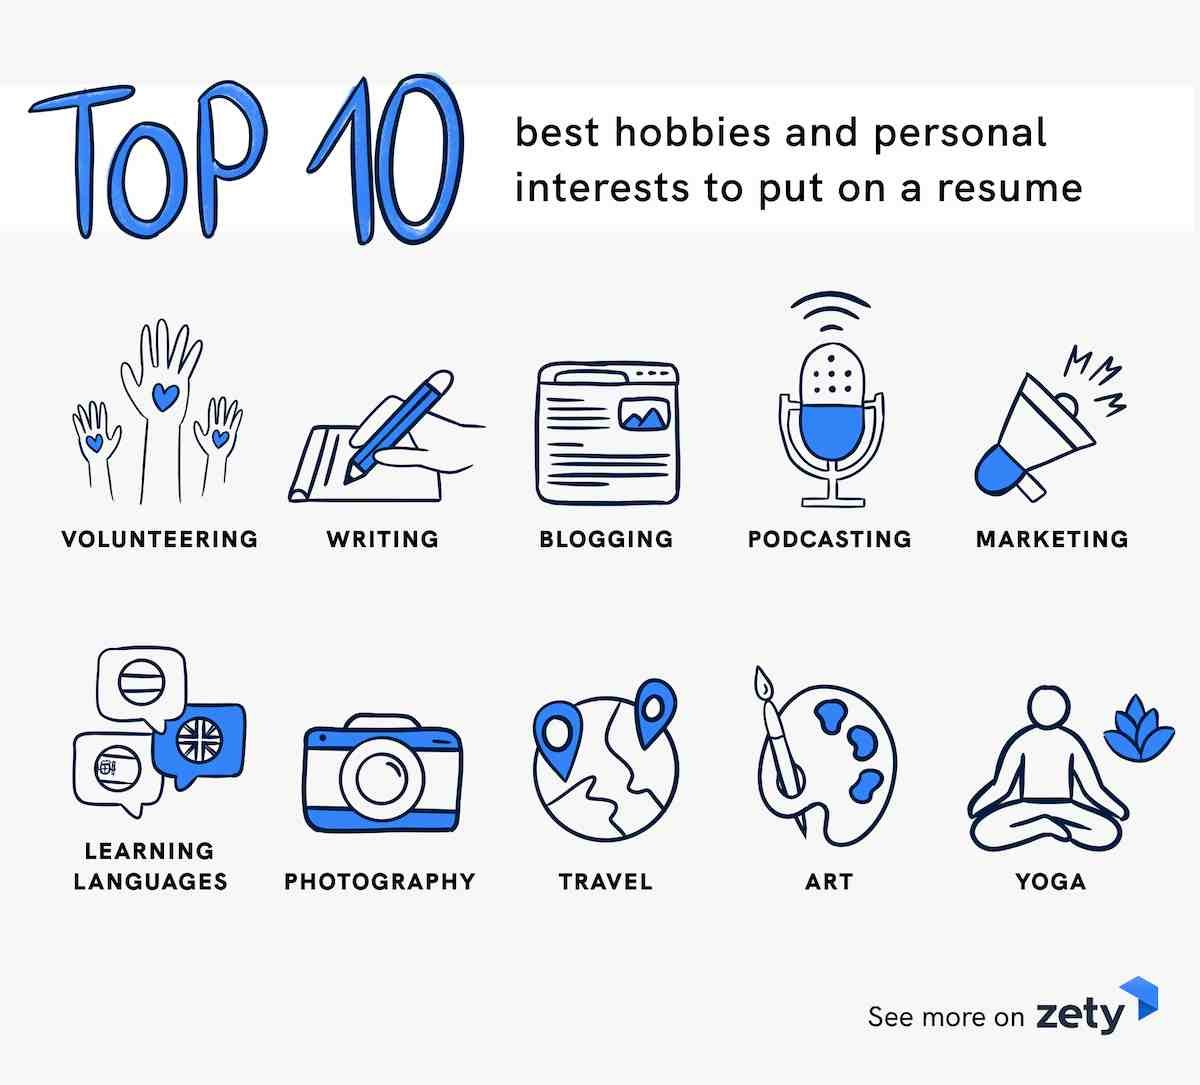 of hobbies and interests for resume cv examples common top best personal to put on Resume Common Interests For Resume